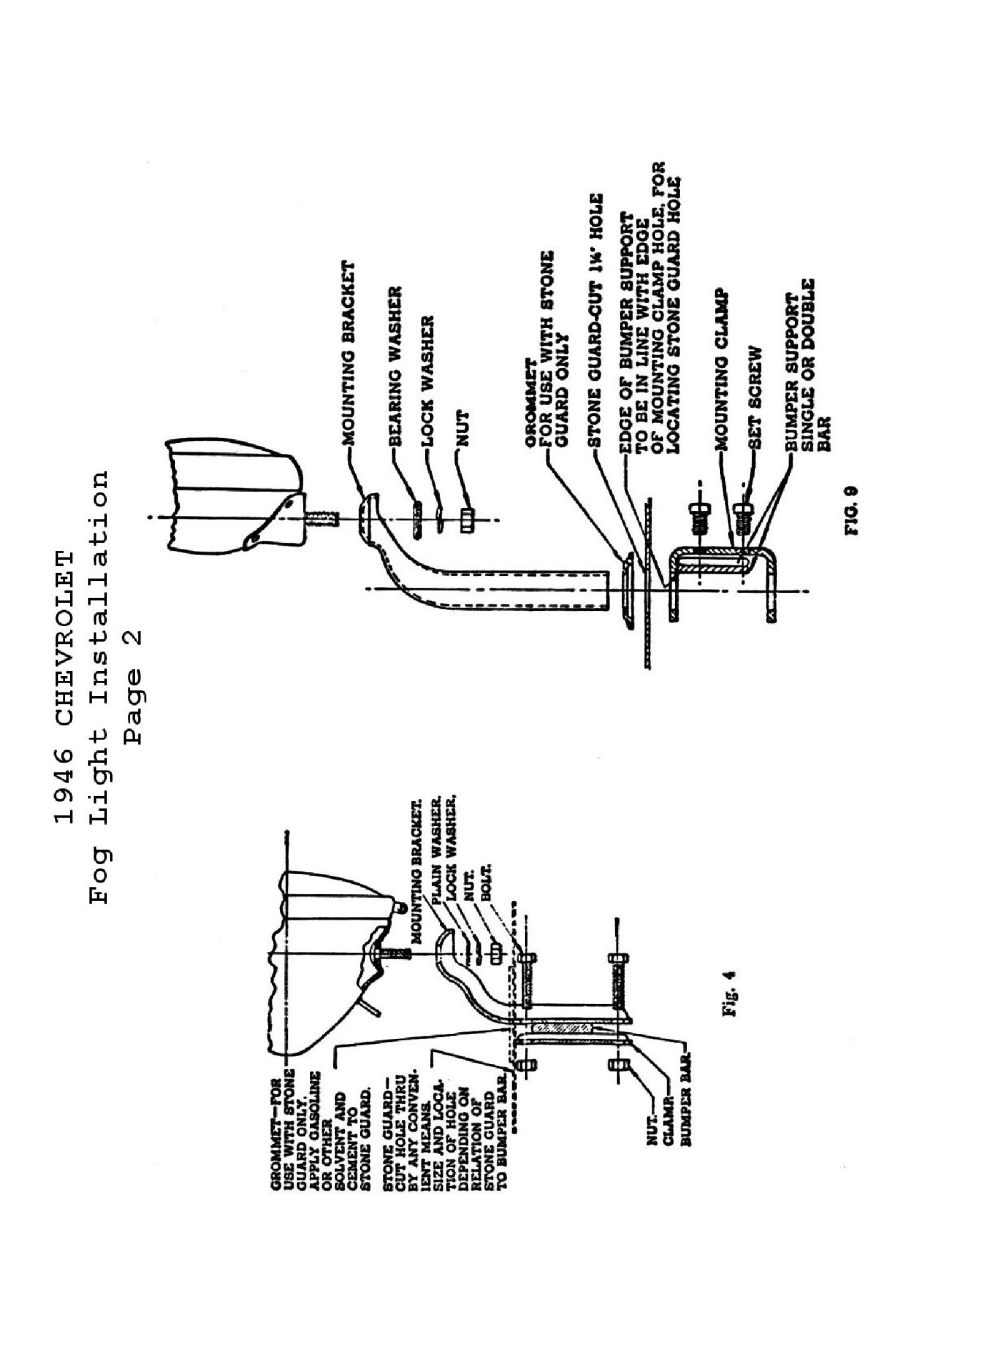 medium resolution of 1965 mustang gt fog light wiring diagrams wiring library rh 8 skriptoase de 2008 chevy fog light wiring diagram 2003 silverado fog light wiring diagram